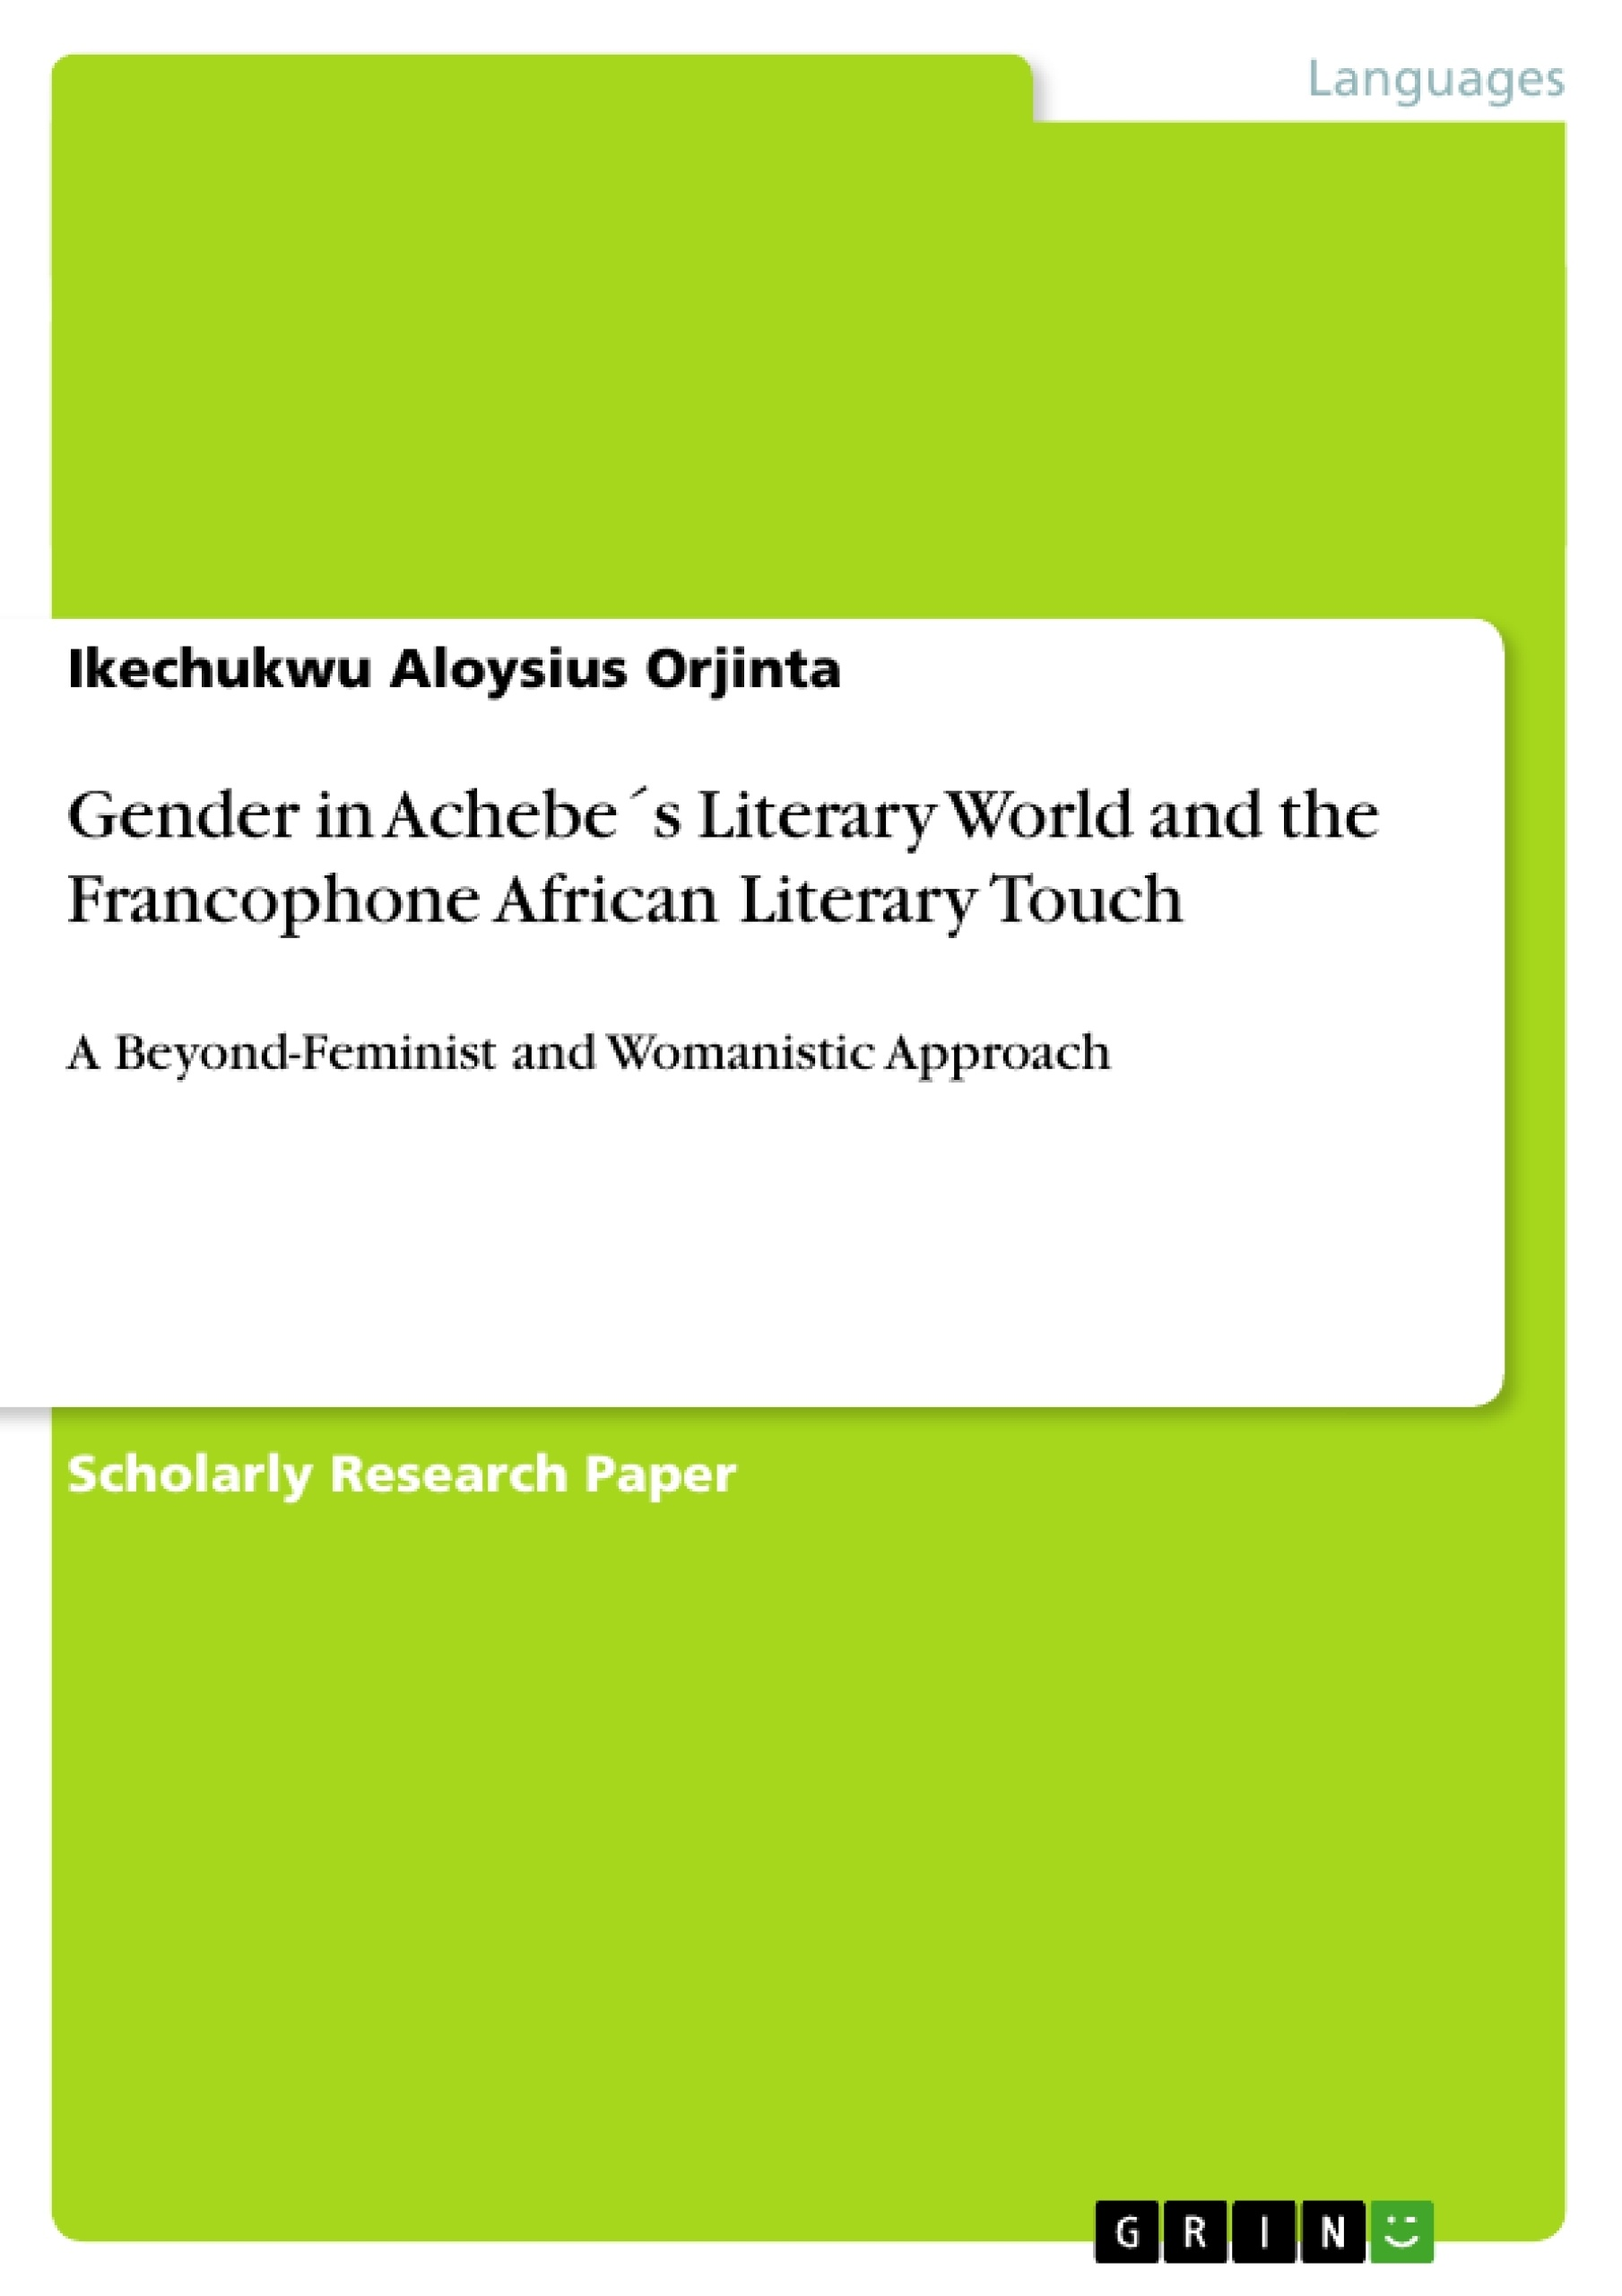 Title: Gender in Achebe´s Literary World and the Francophone African Literary Touch